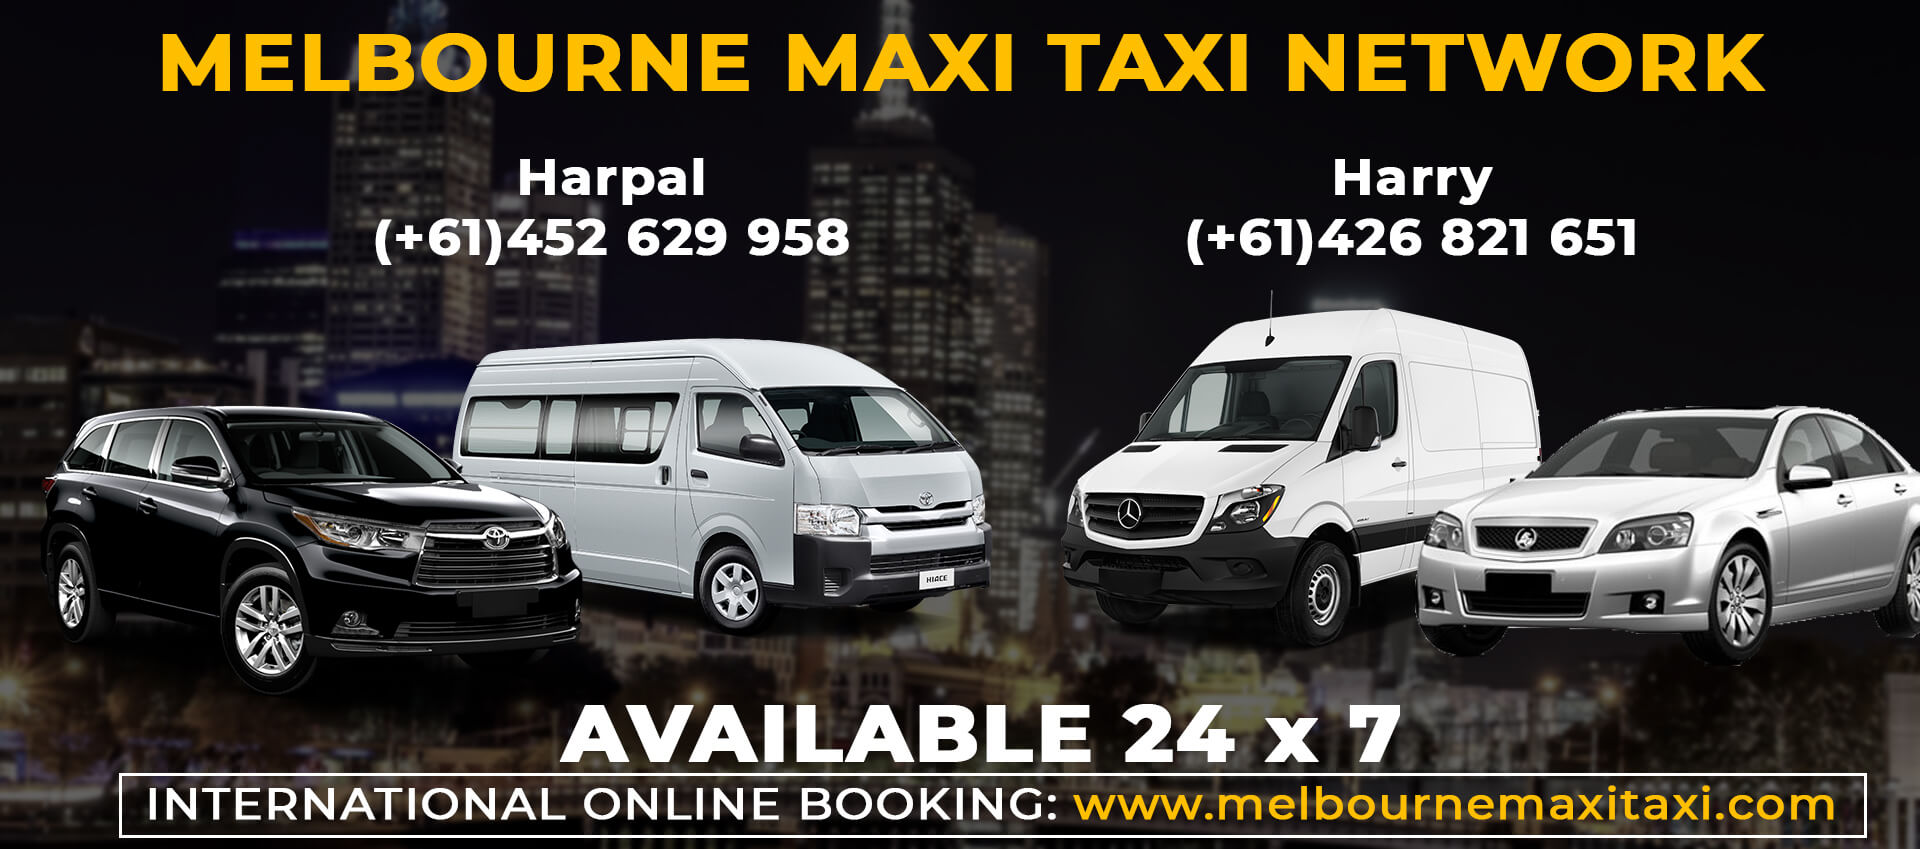 international booking banner for Melbourne Maxi Taxi Network